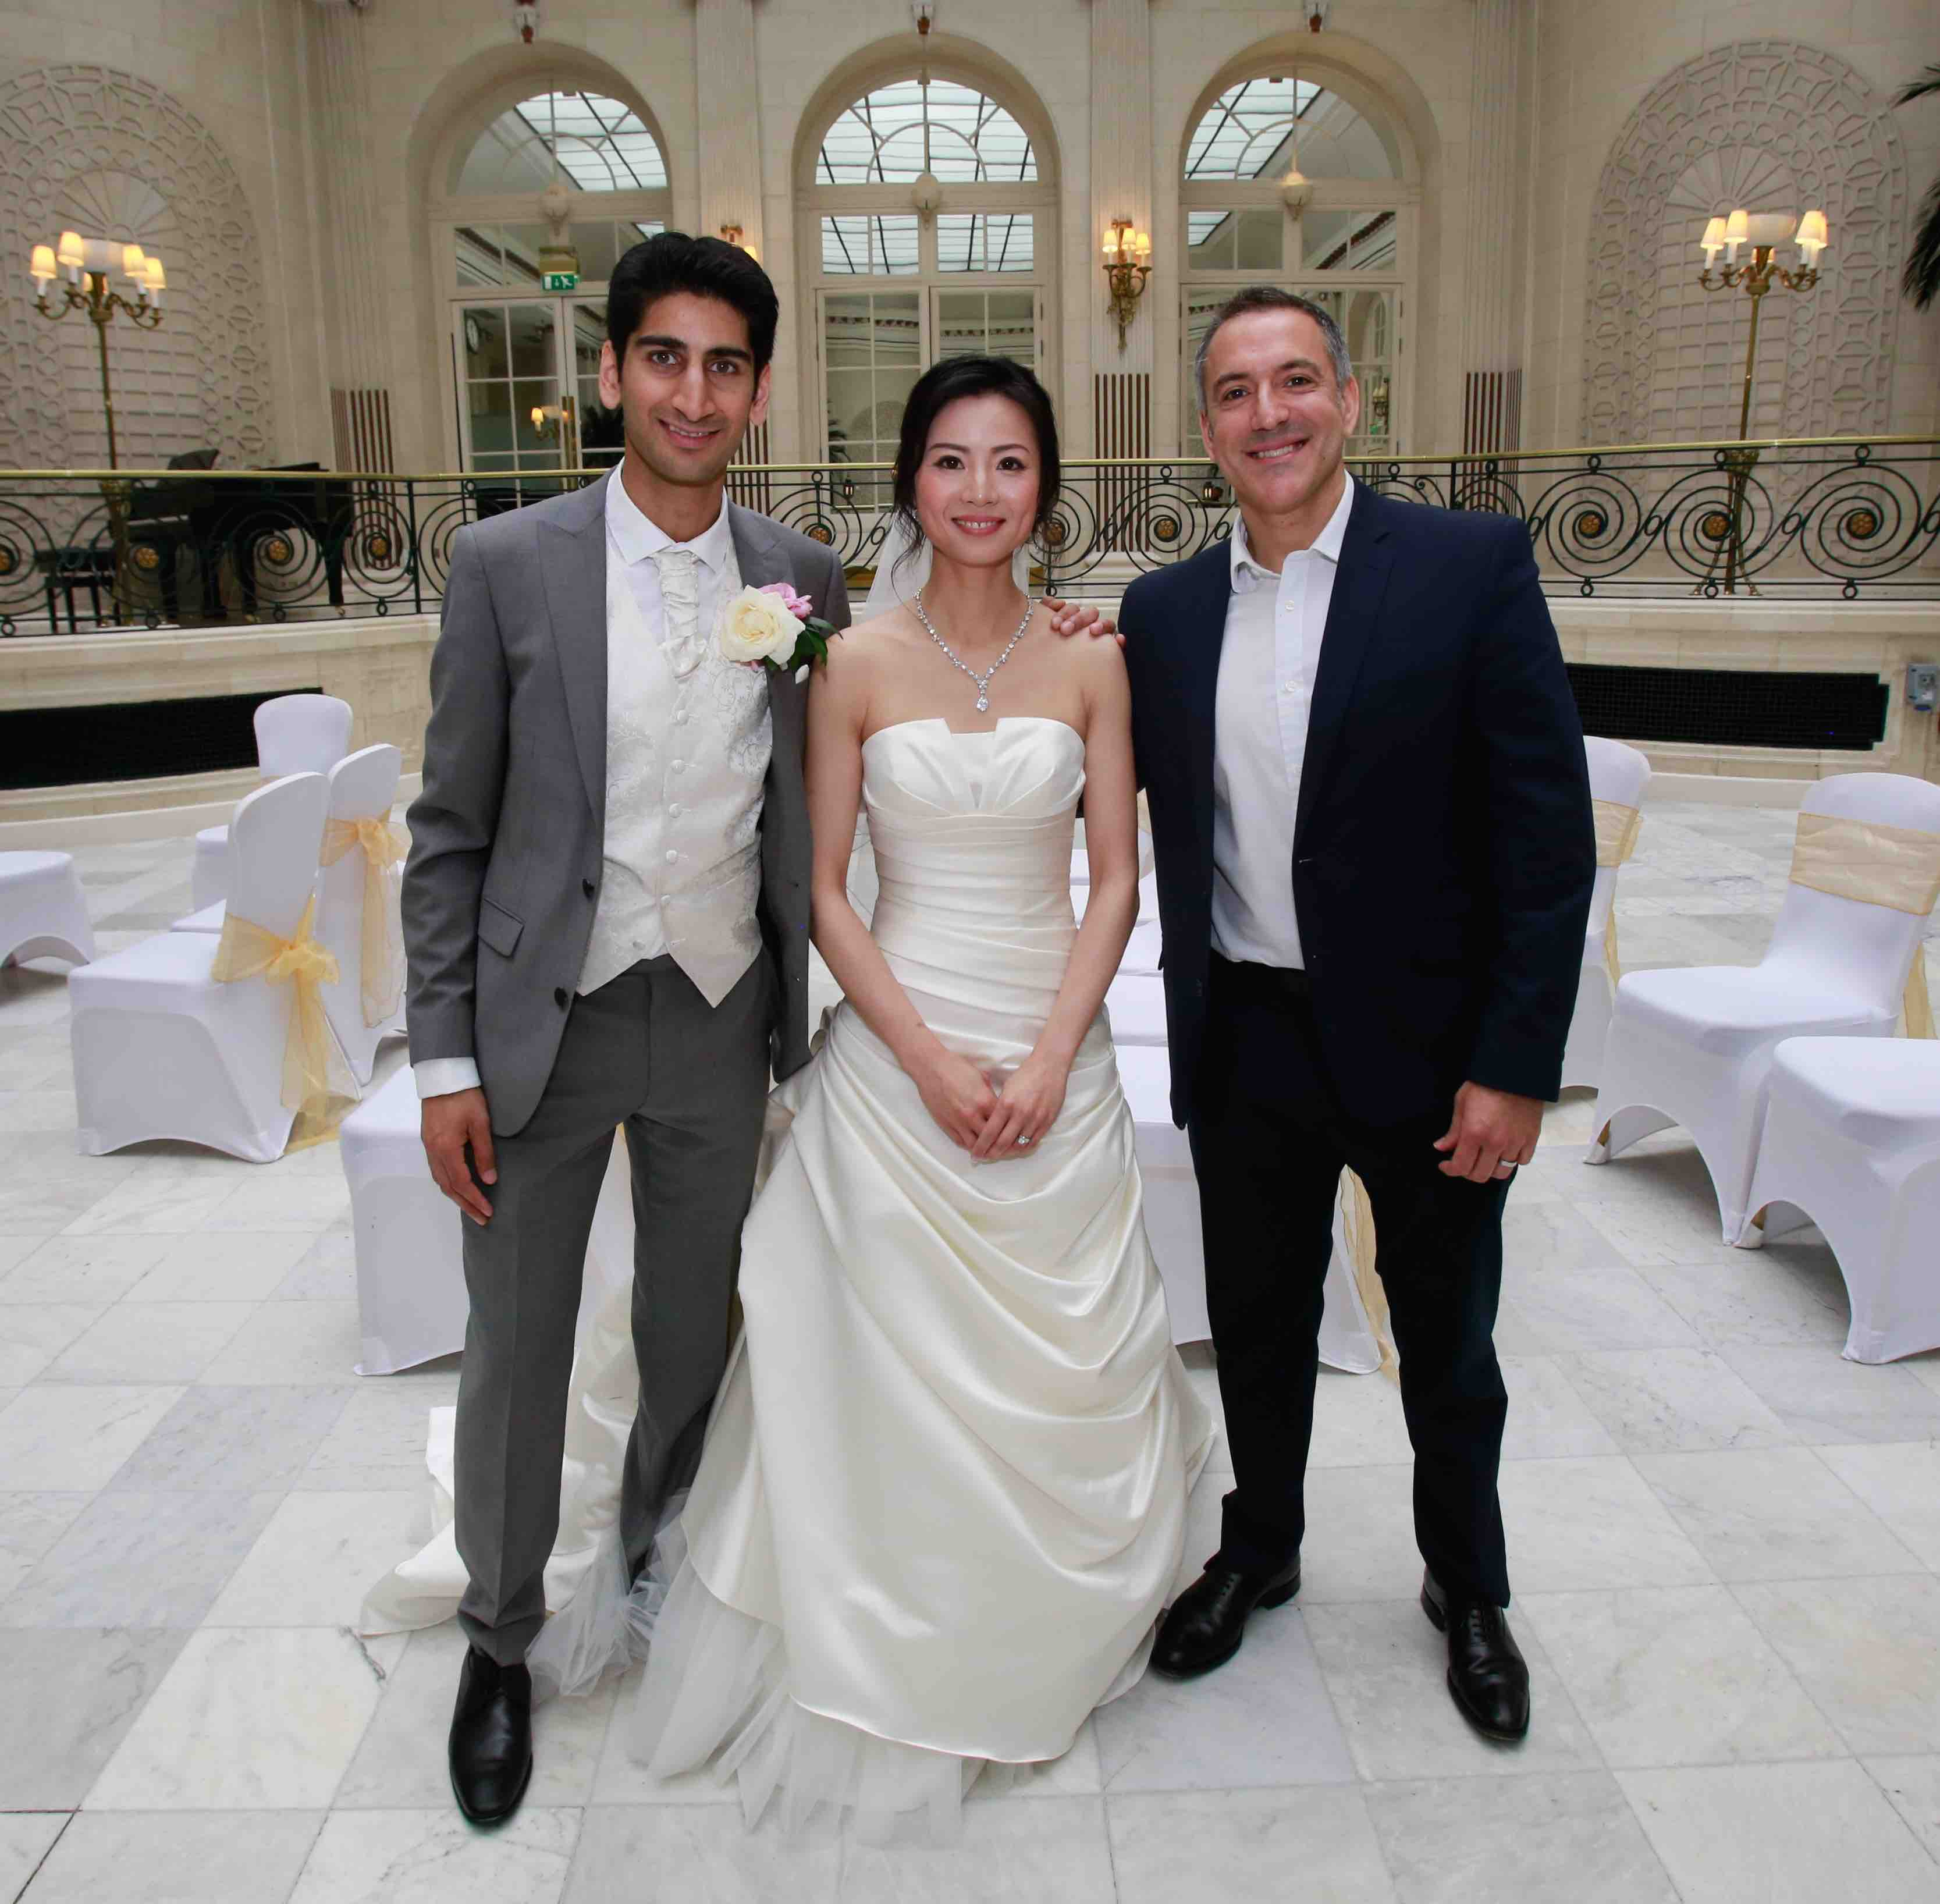 Bryan-Edery-Essex-Pianist-Wedding-Oiwah-and-Mohit